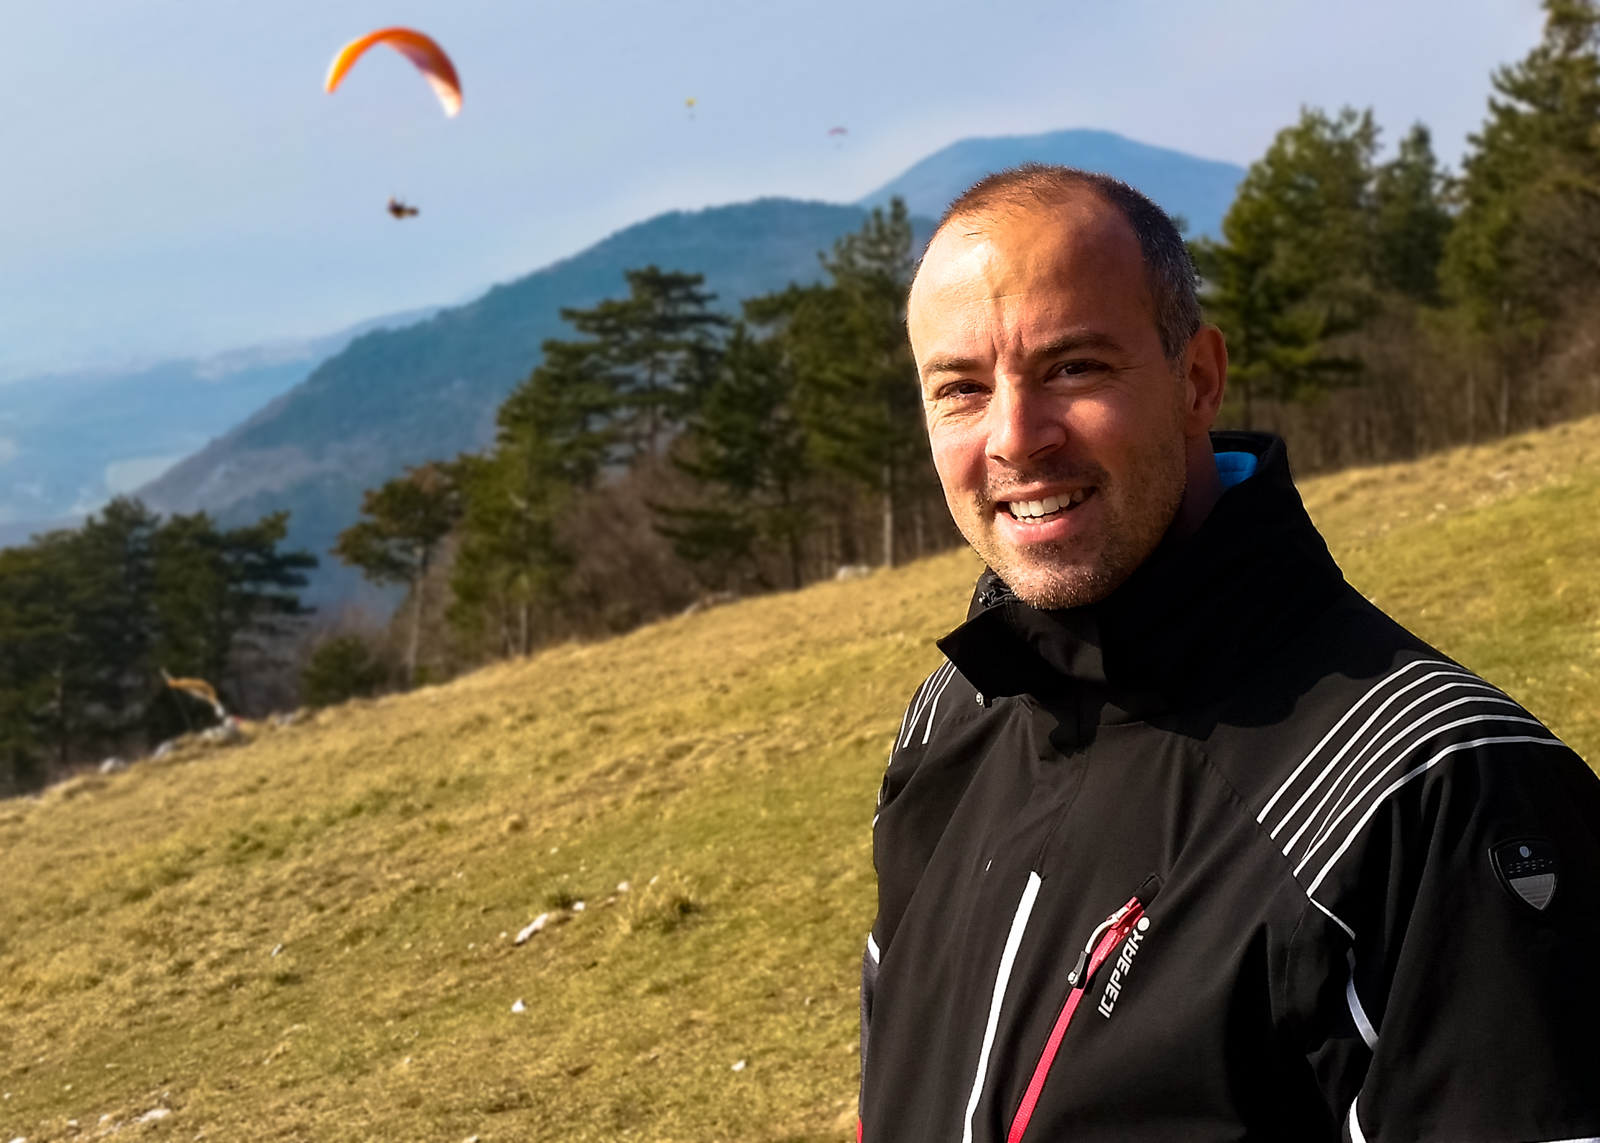 Paragliding enthusiast from Nova Gorica